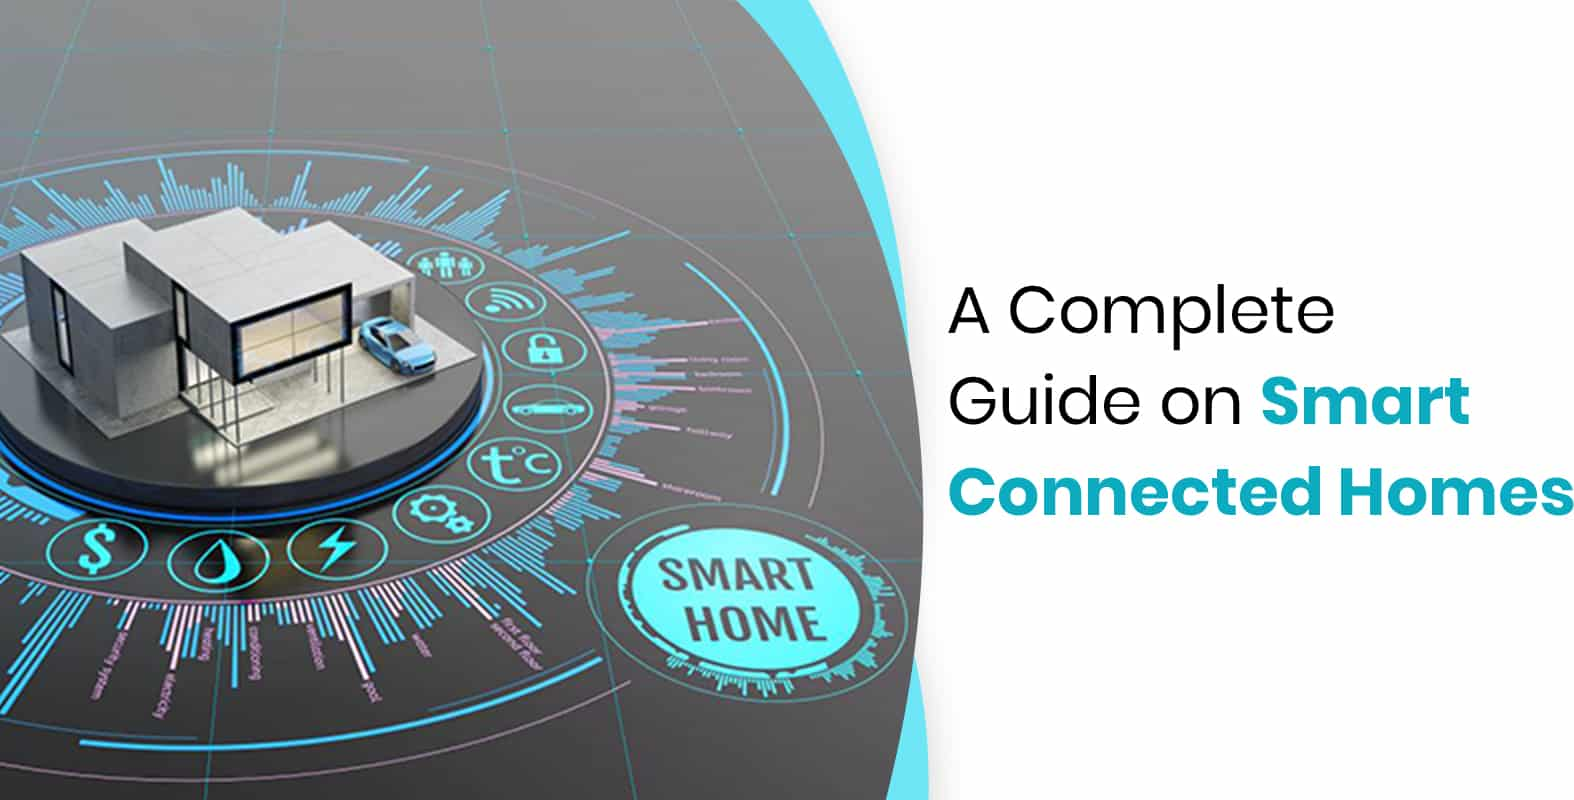 Smart Connected Homes